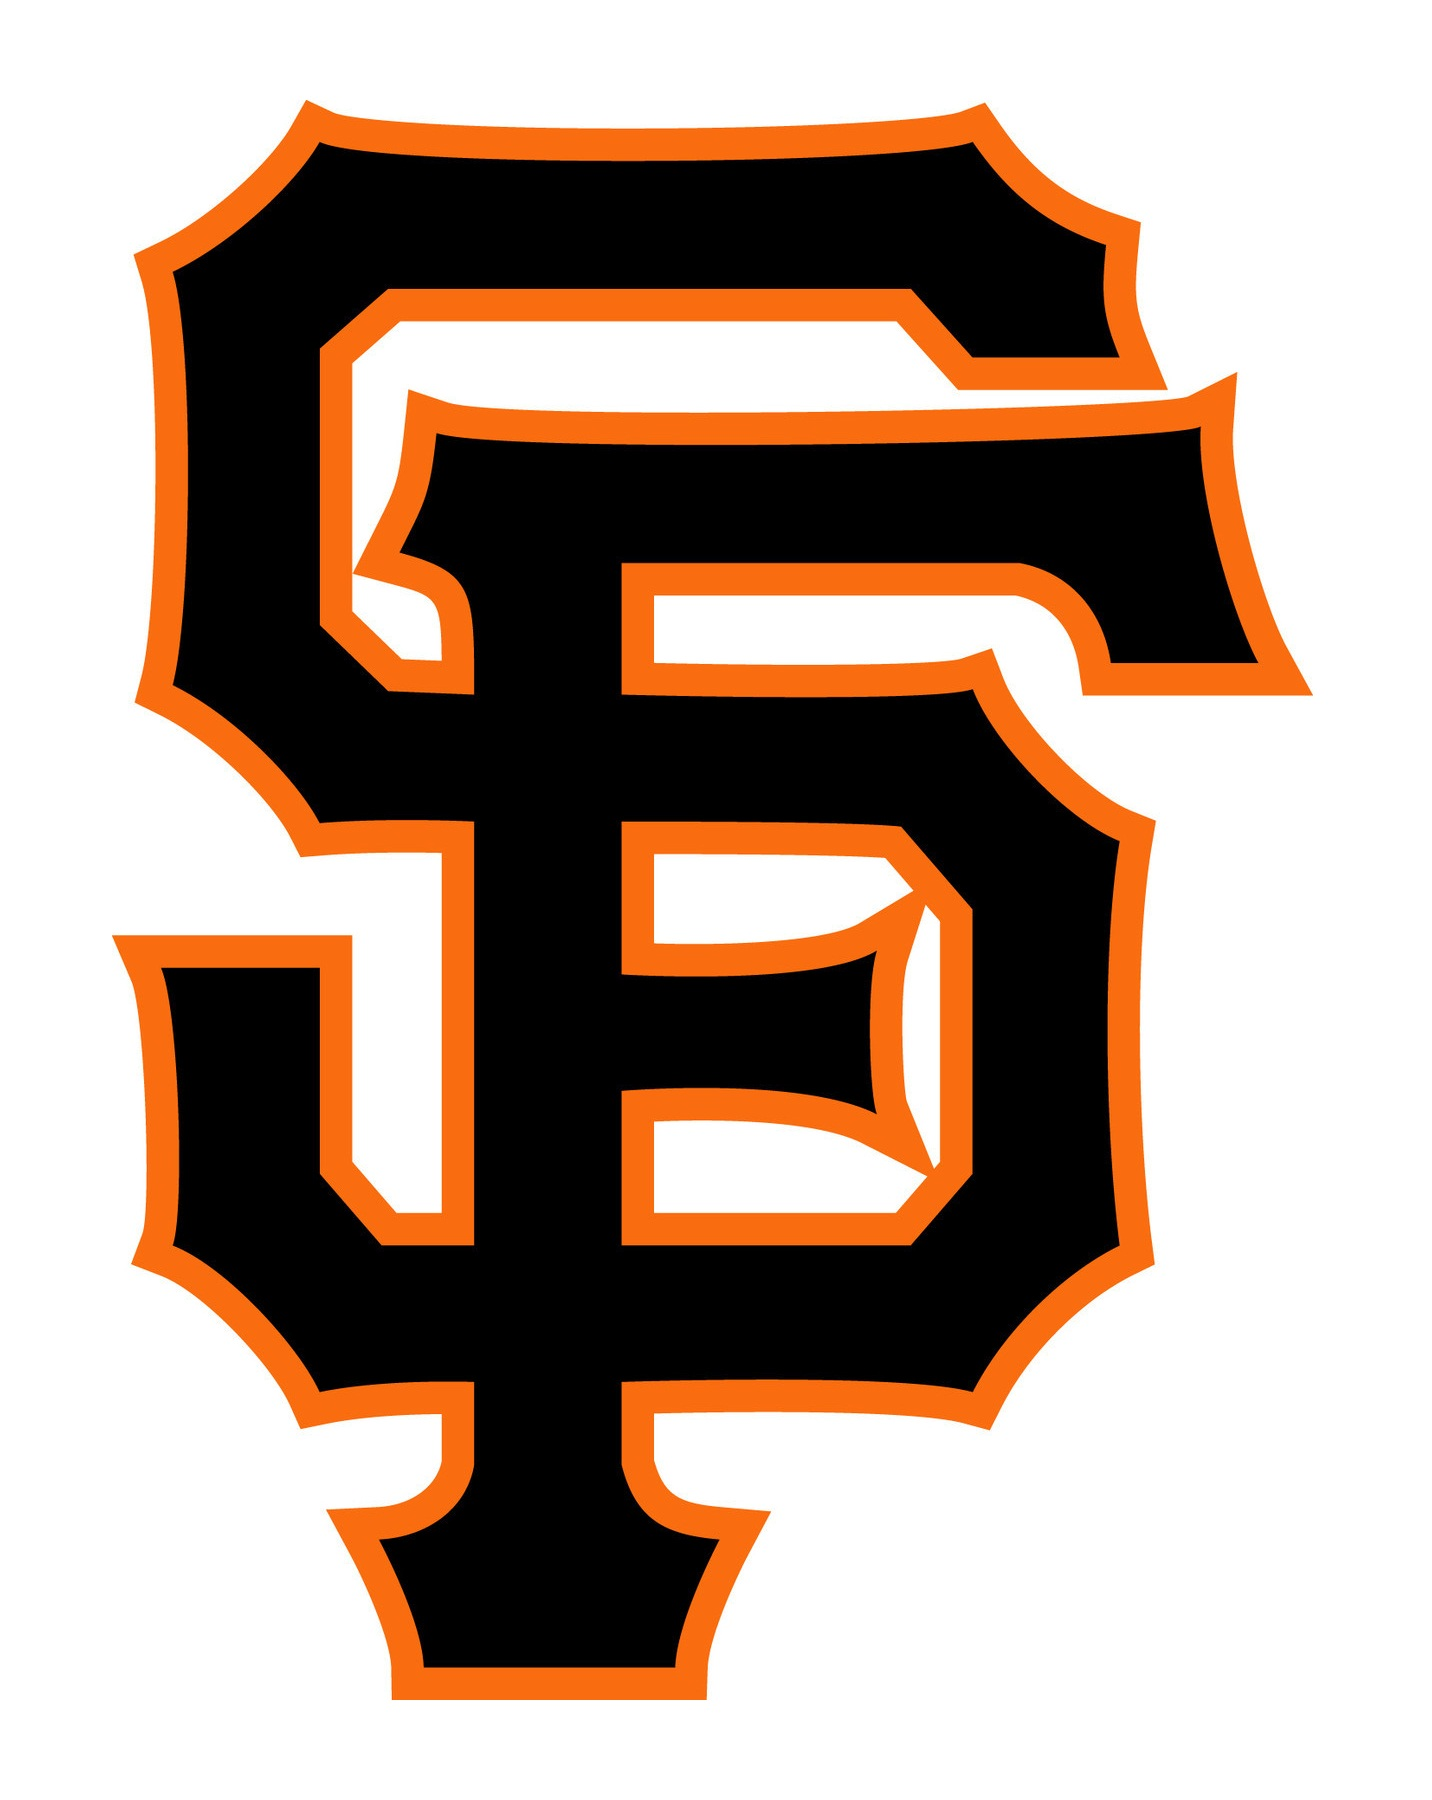 san francisco giants rh hmgstrategy com sf giants logo images sf giants logo svg